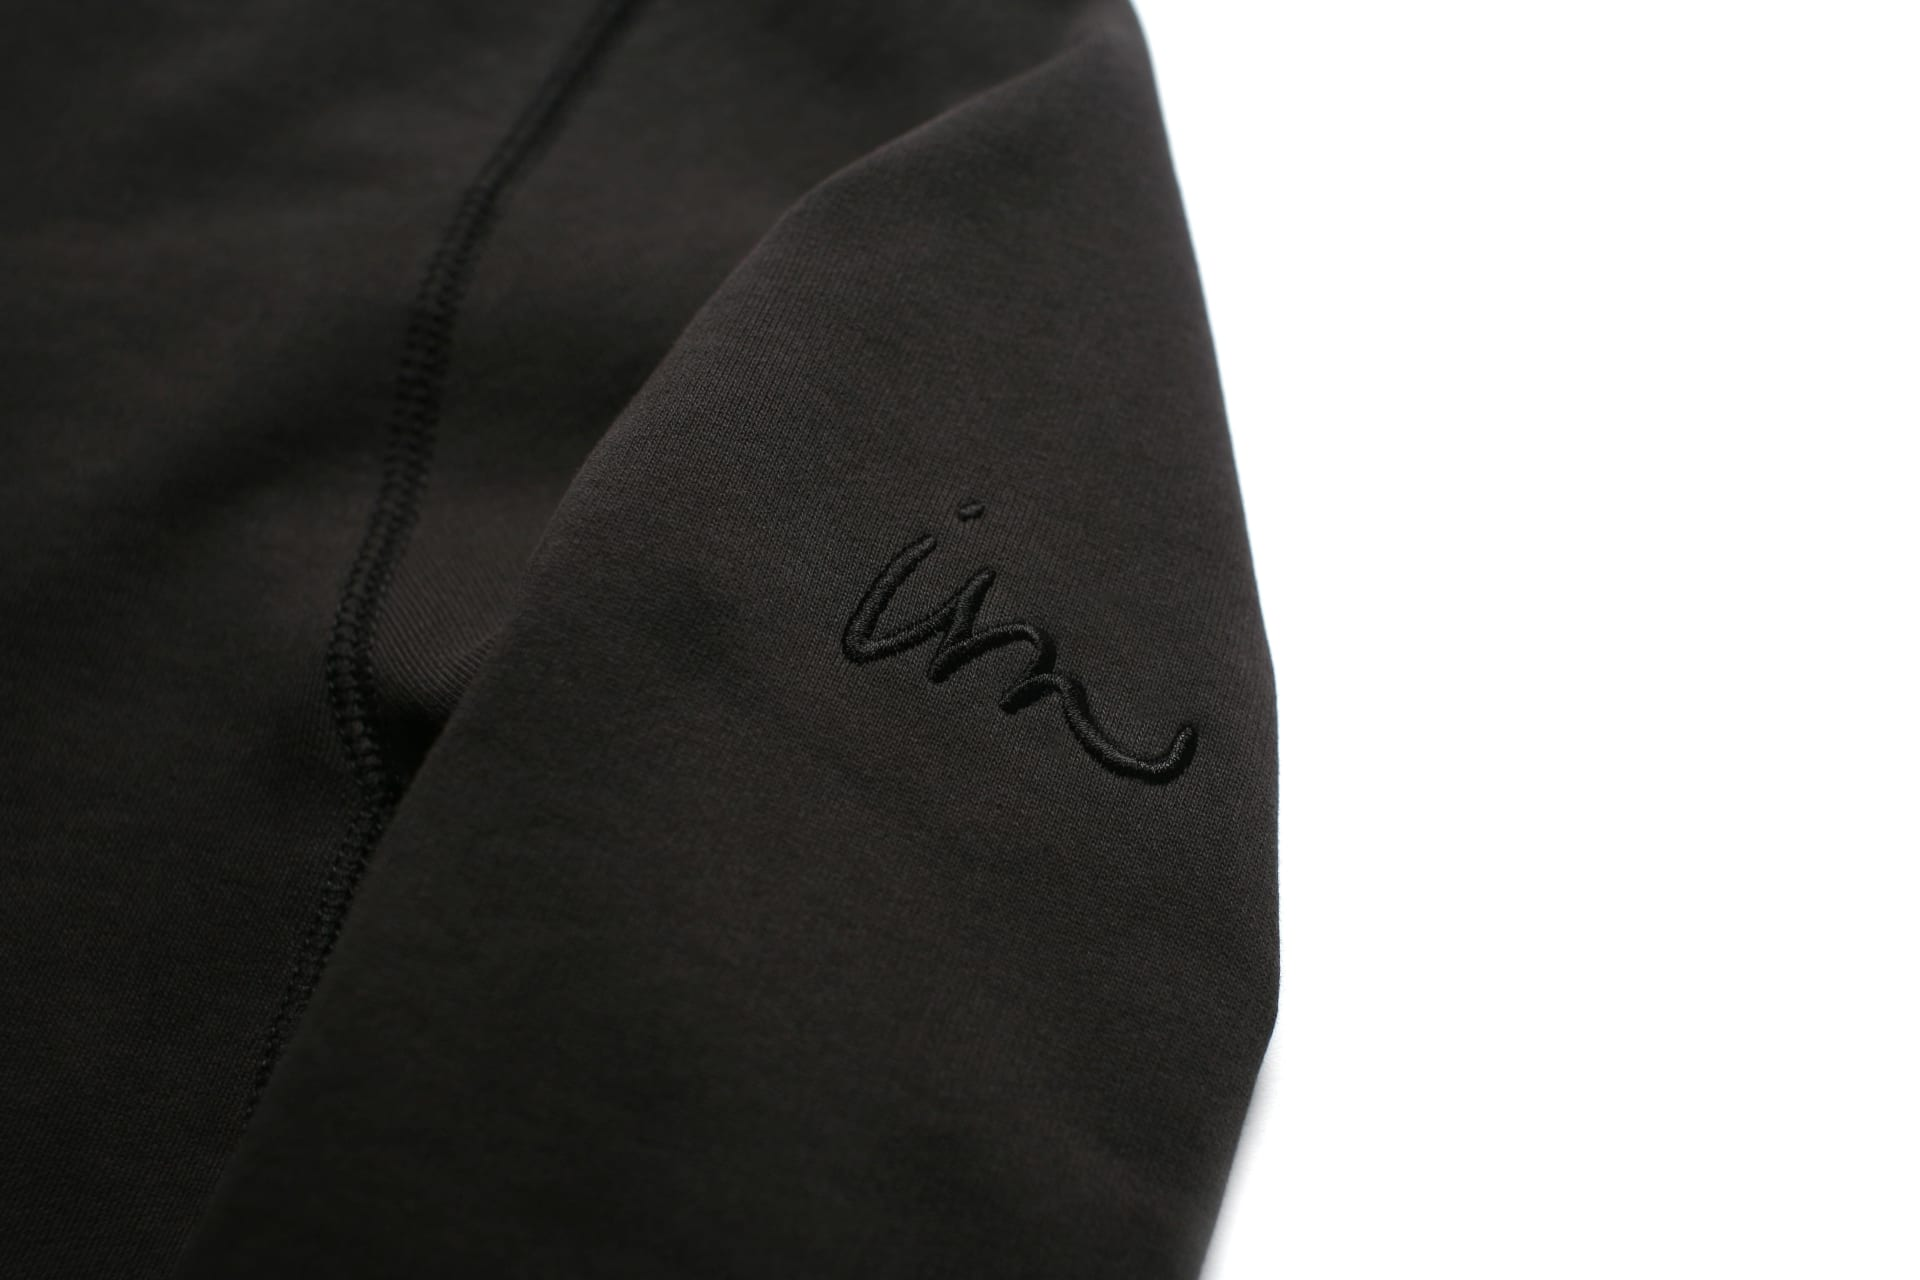 Tonal Sleeve Embroidery